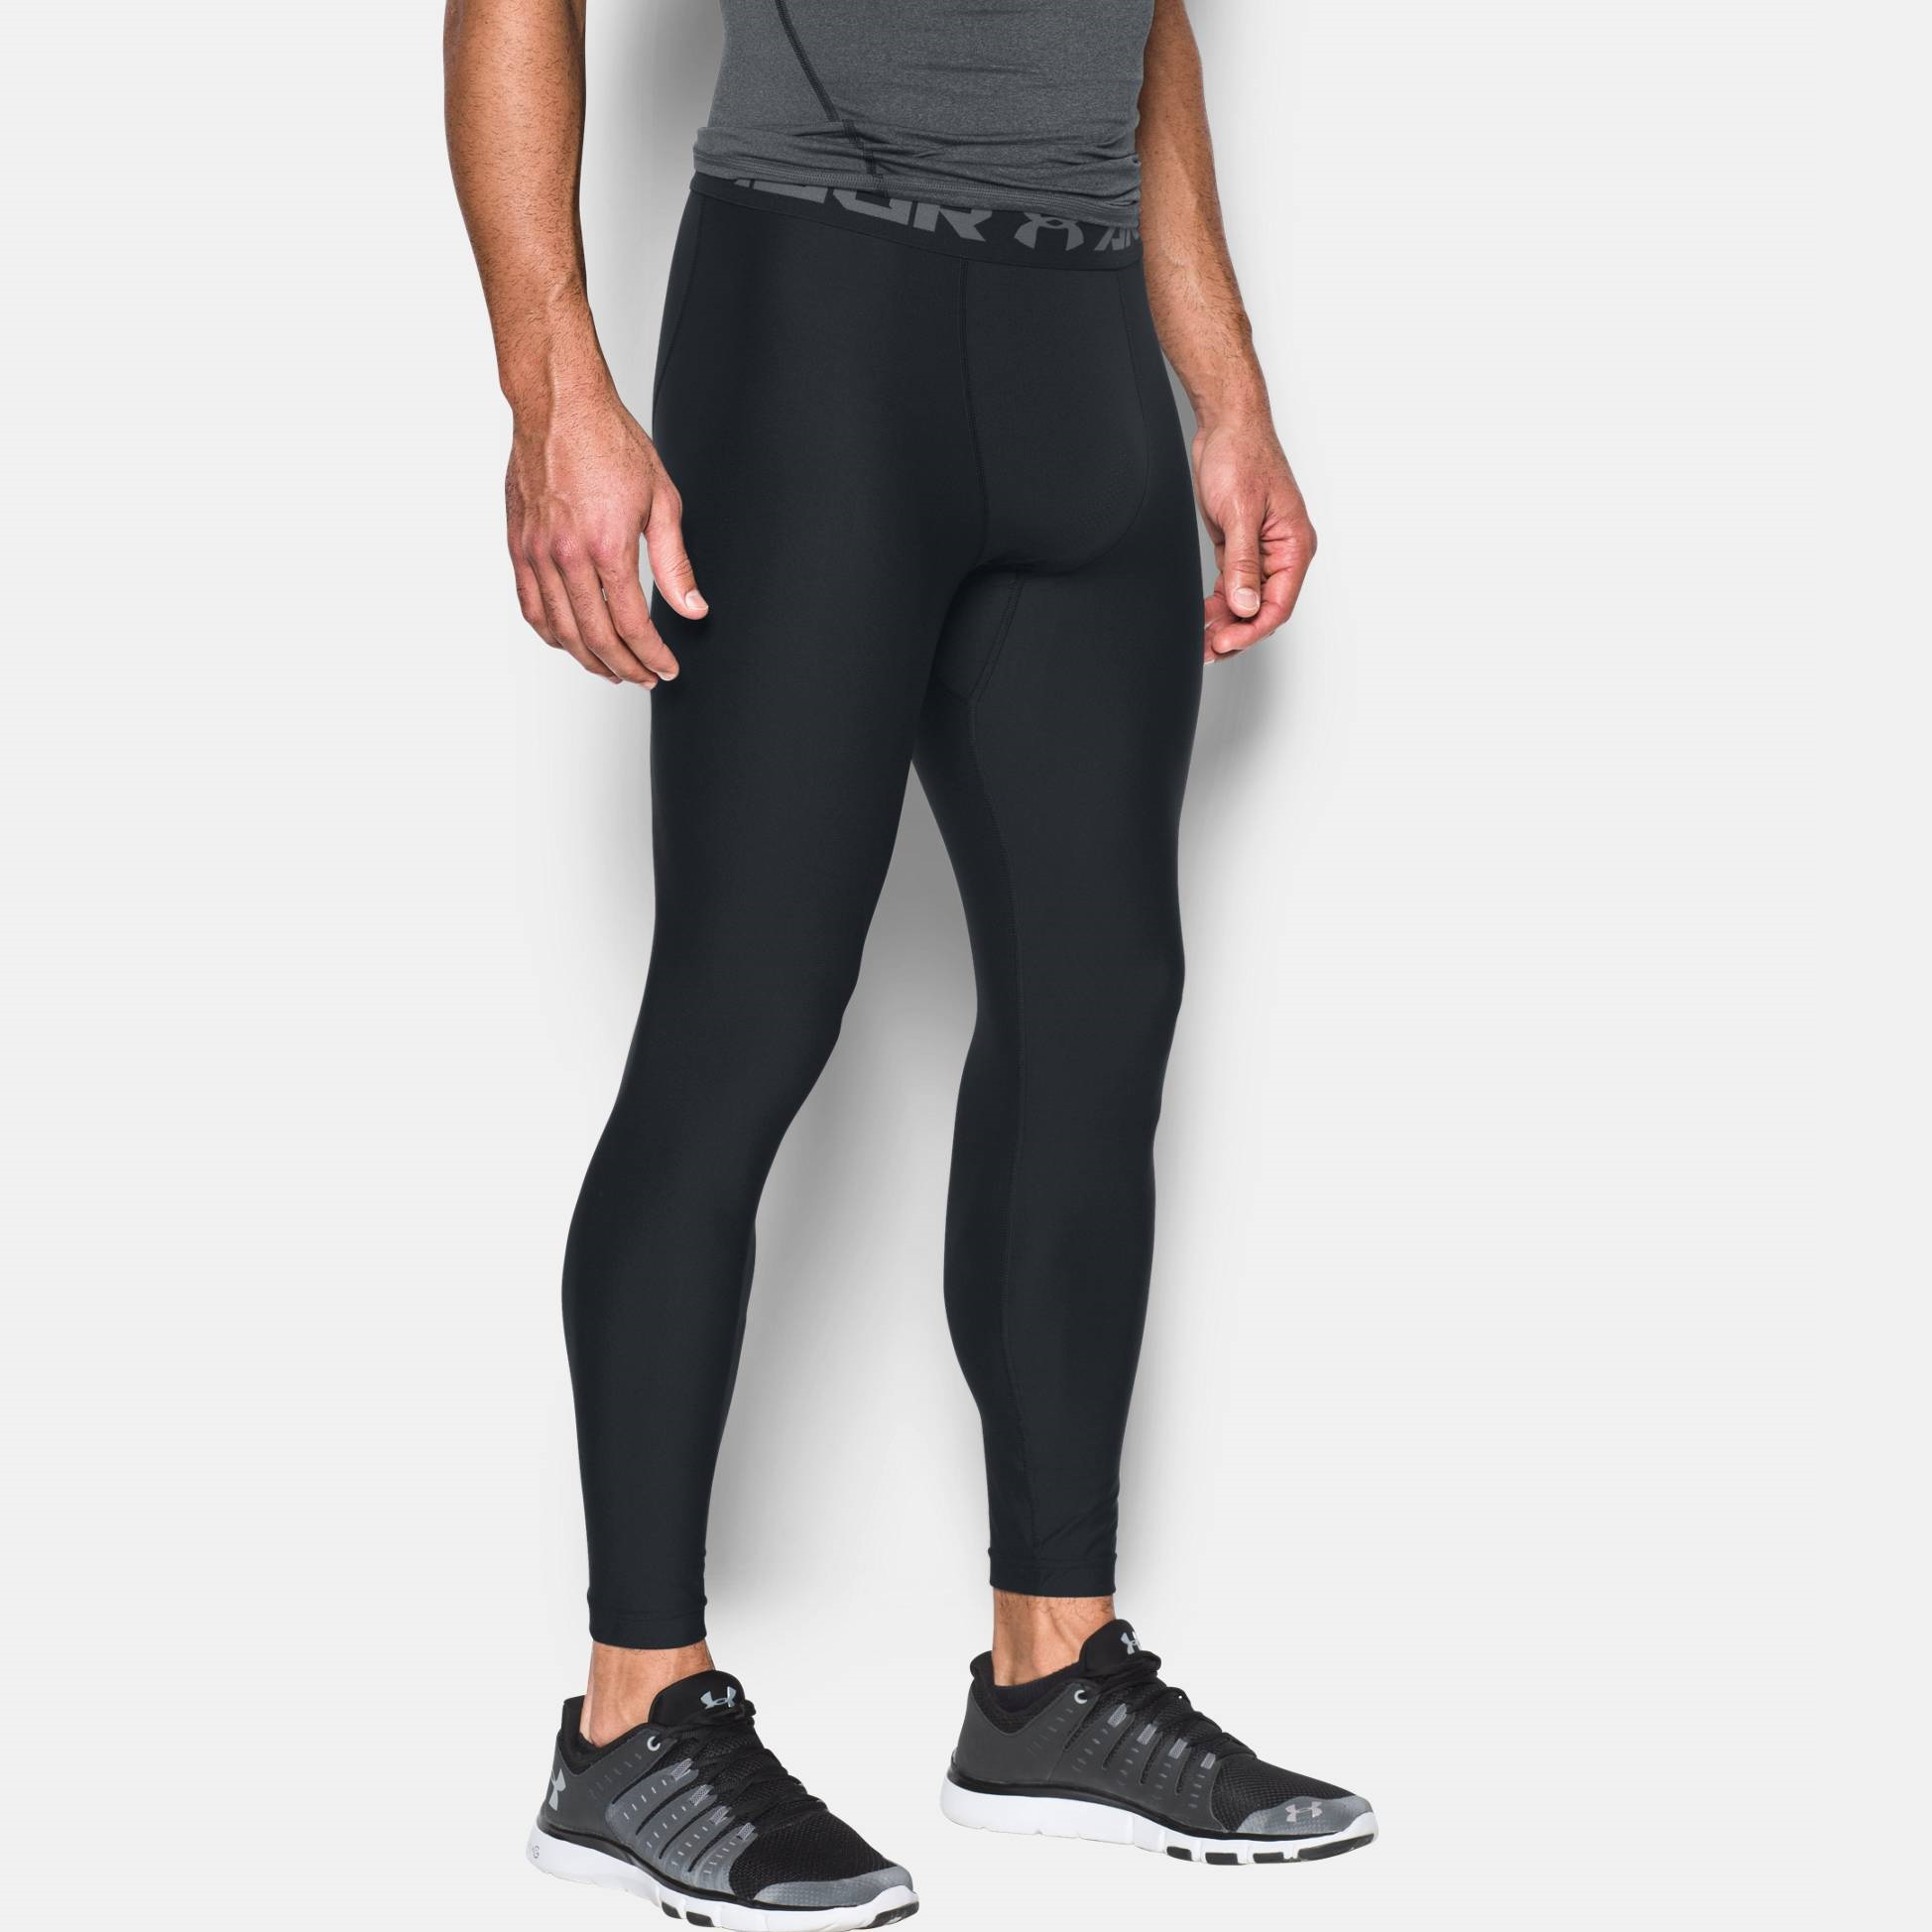 35f0d78957 under armour HeatGear Armour Leggings | Fitness